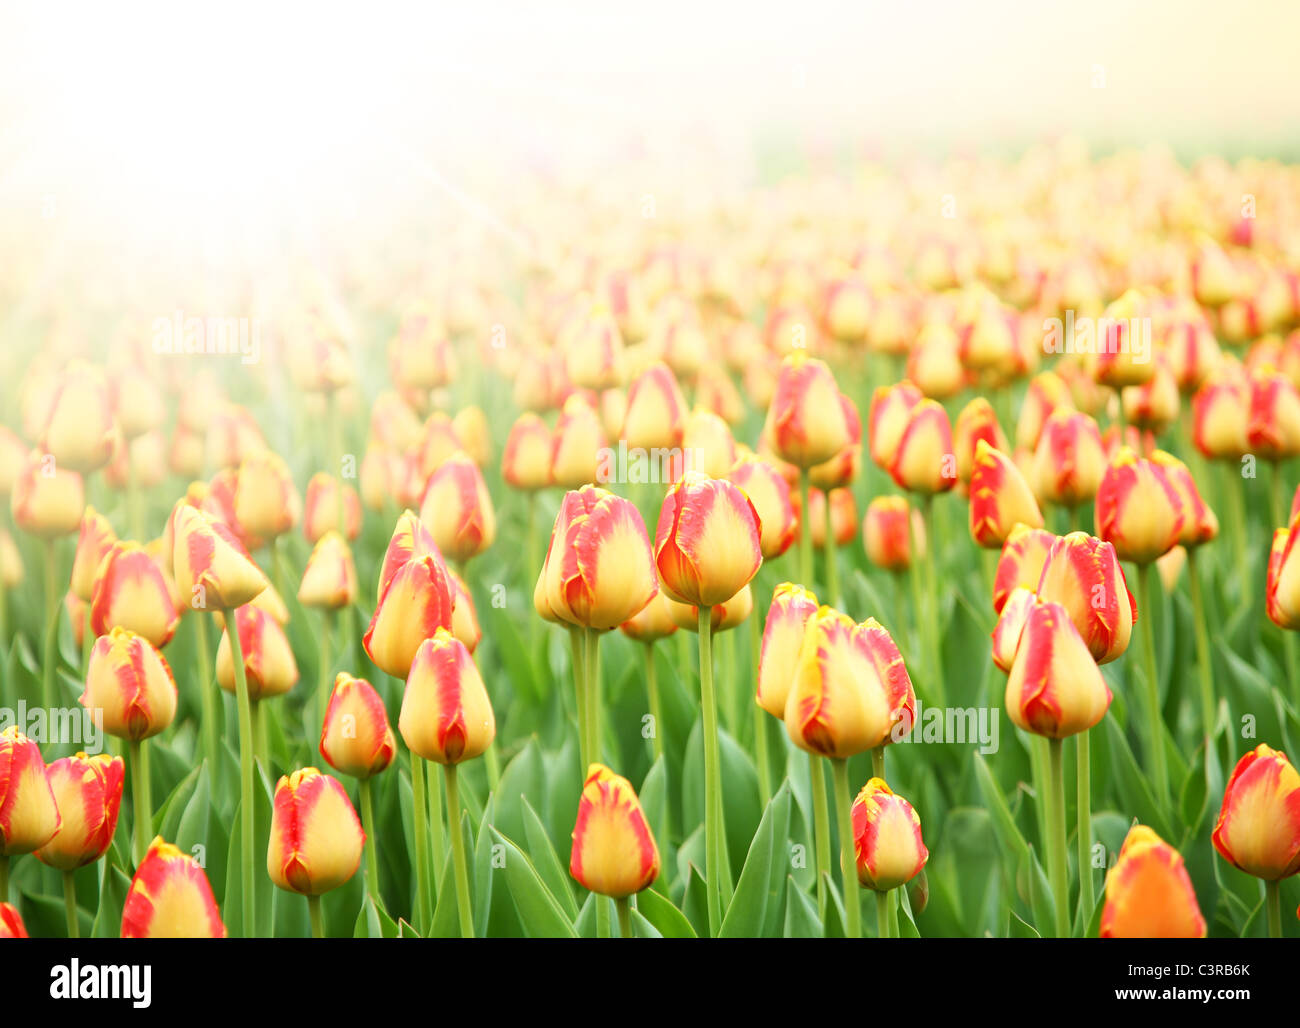 Field with colorful tulips - Stock Image